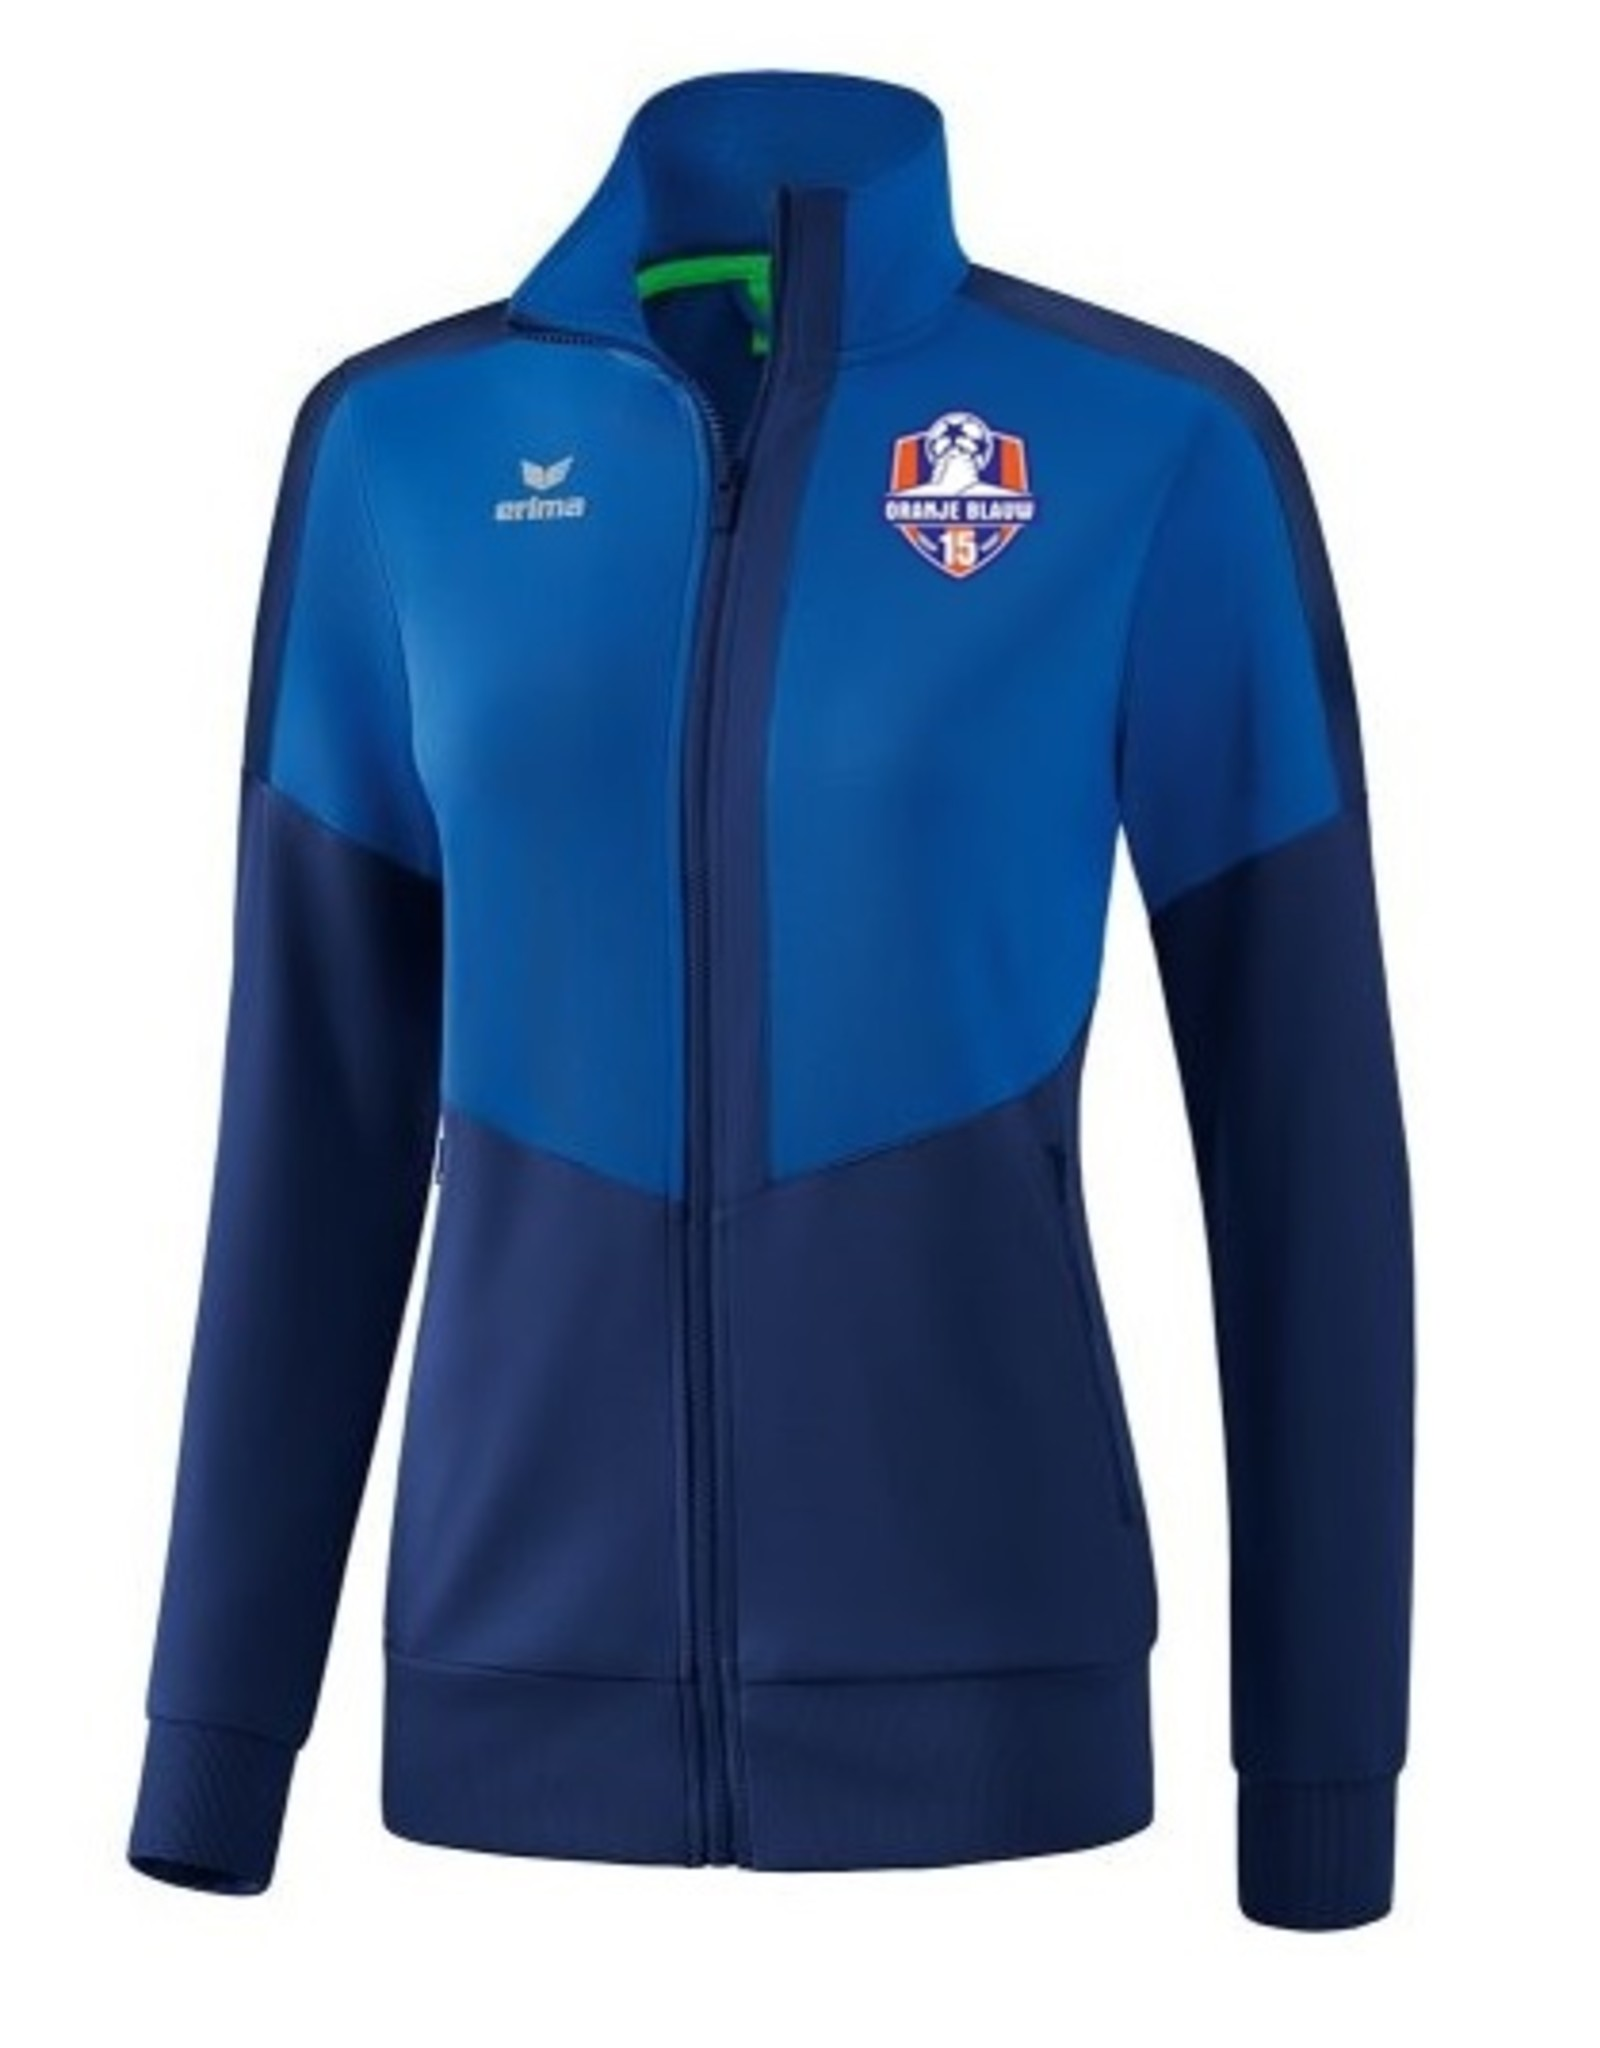 Erima Oranje Blauw'15 dames trainings jack incl. clublogo